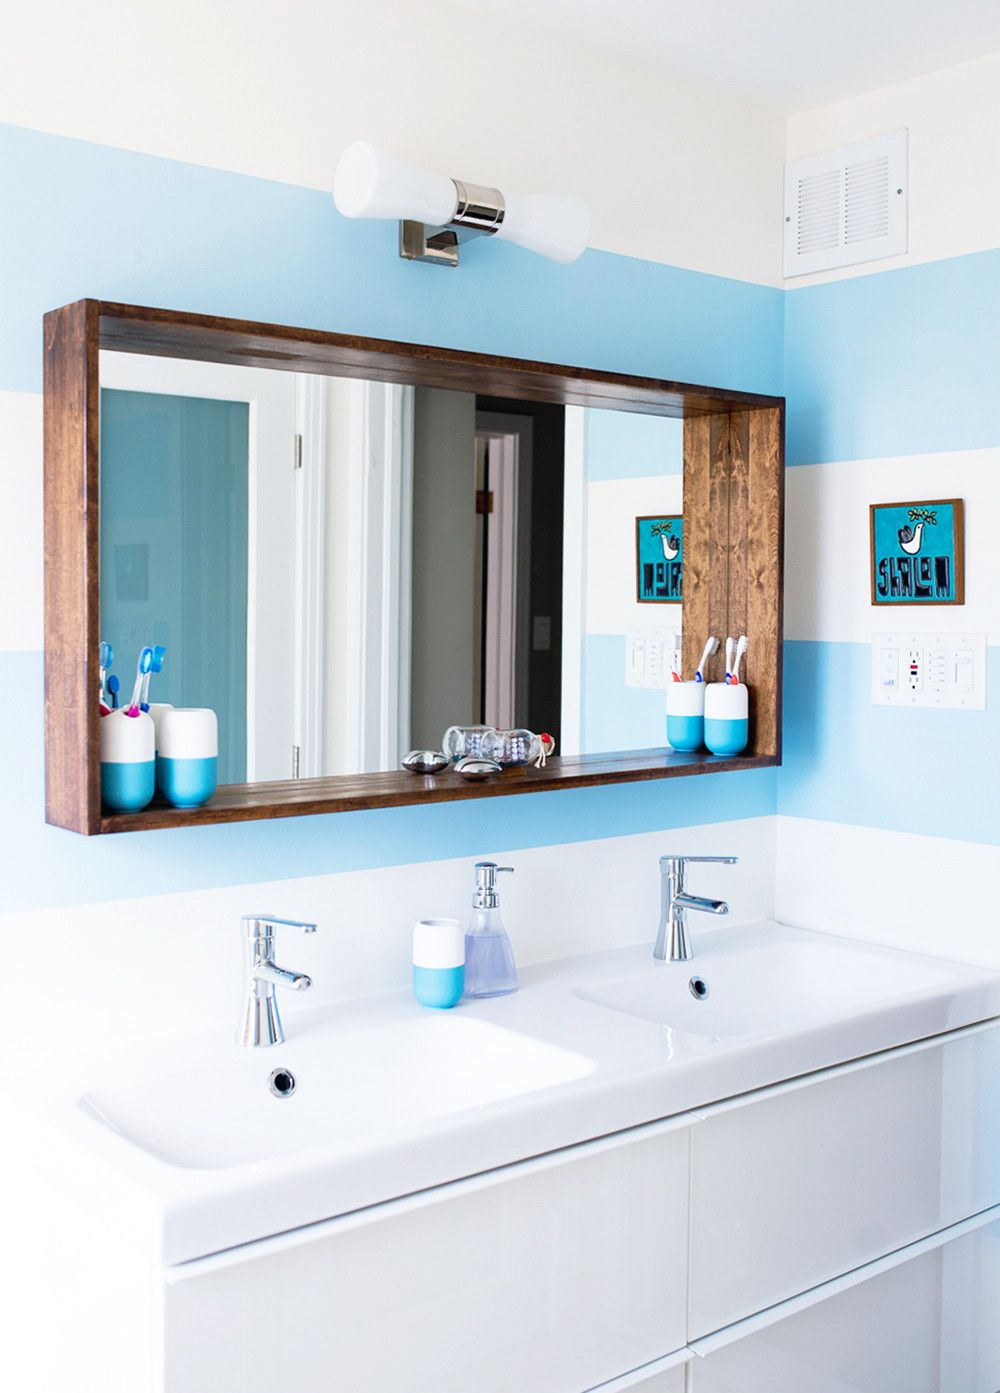 17 Bathroom Mirrors Ideas Decor Design Inspirations For Bathroom Pinterest Big Sea